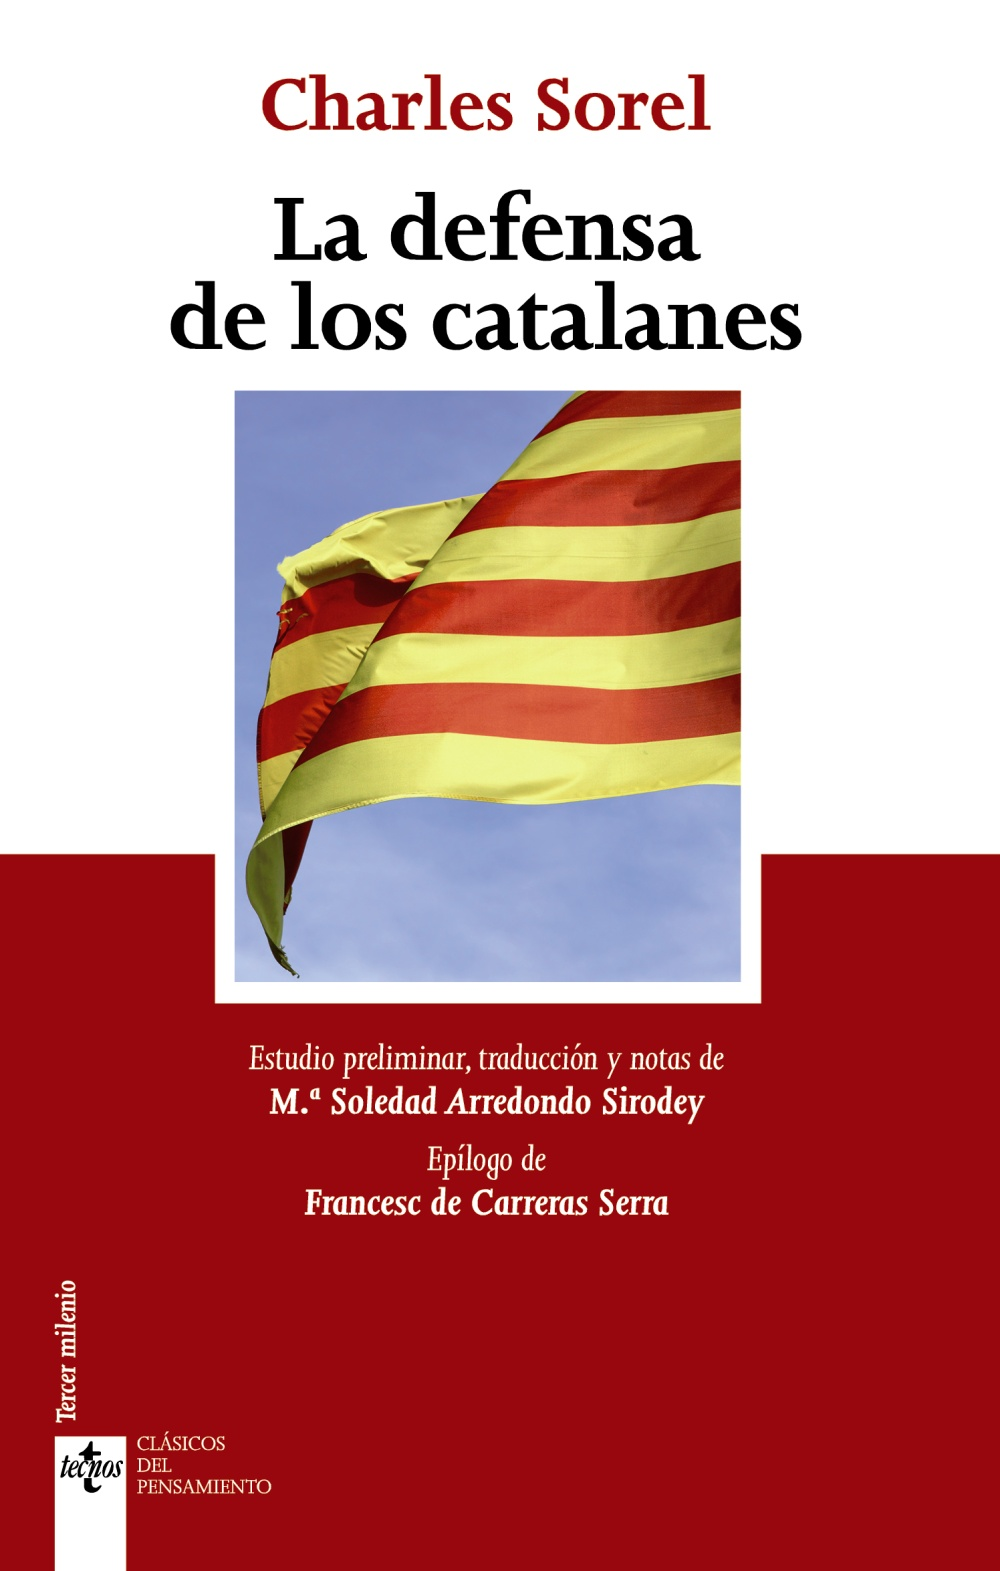 La defensa de los catalanes. 9788430978762